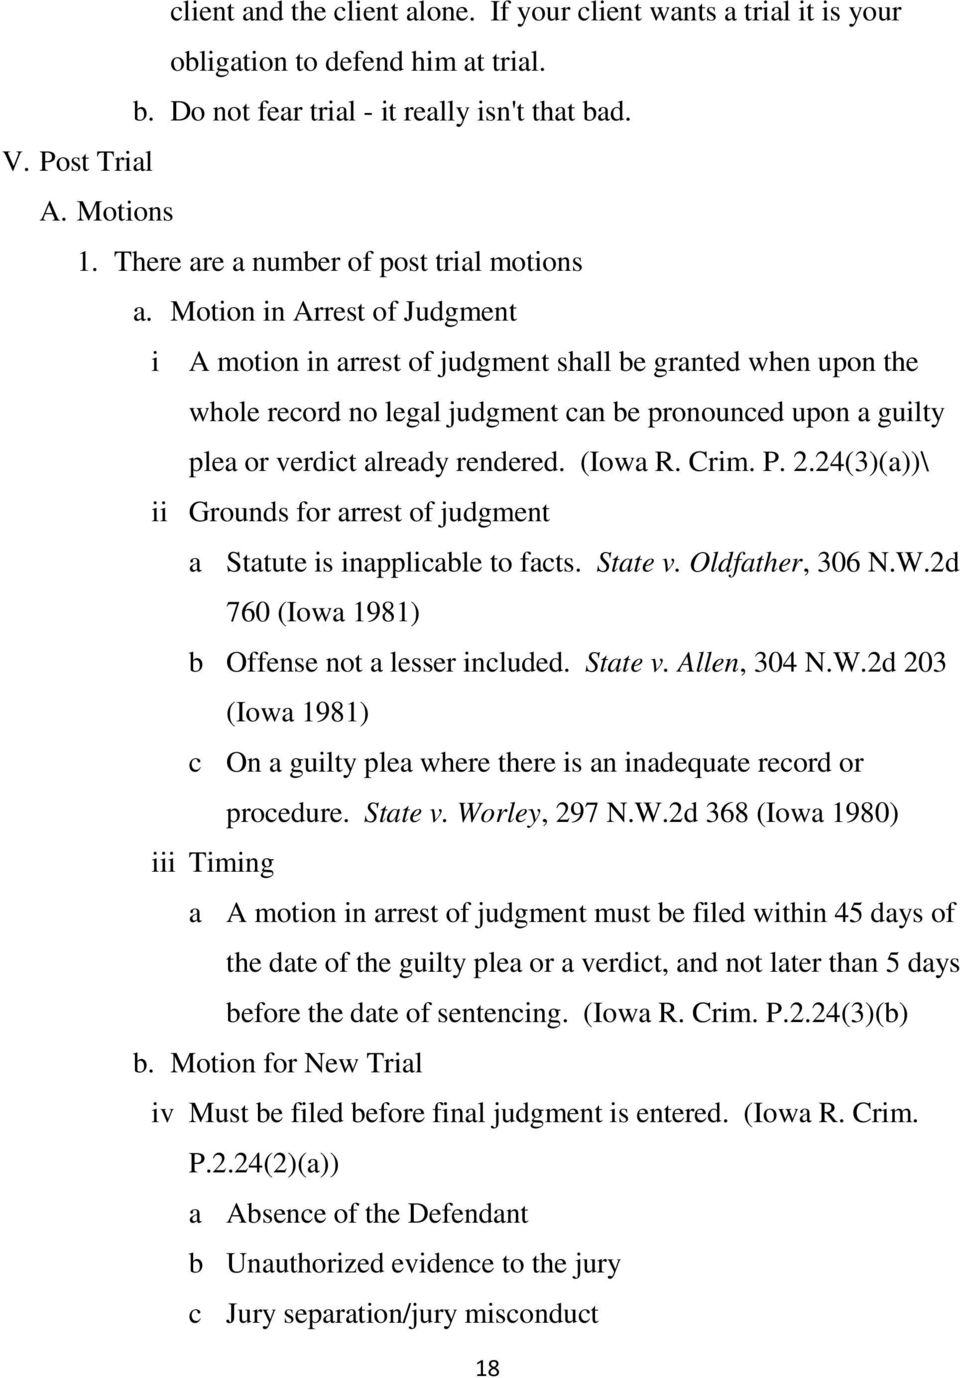 Motion in Arrest of Judgment i A motion in arrest of judgment shall be granted when upon the whole record no legal judgment can be pronounced upon a guilty plea or verdict already rendered. (Iowa R.